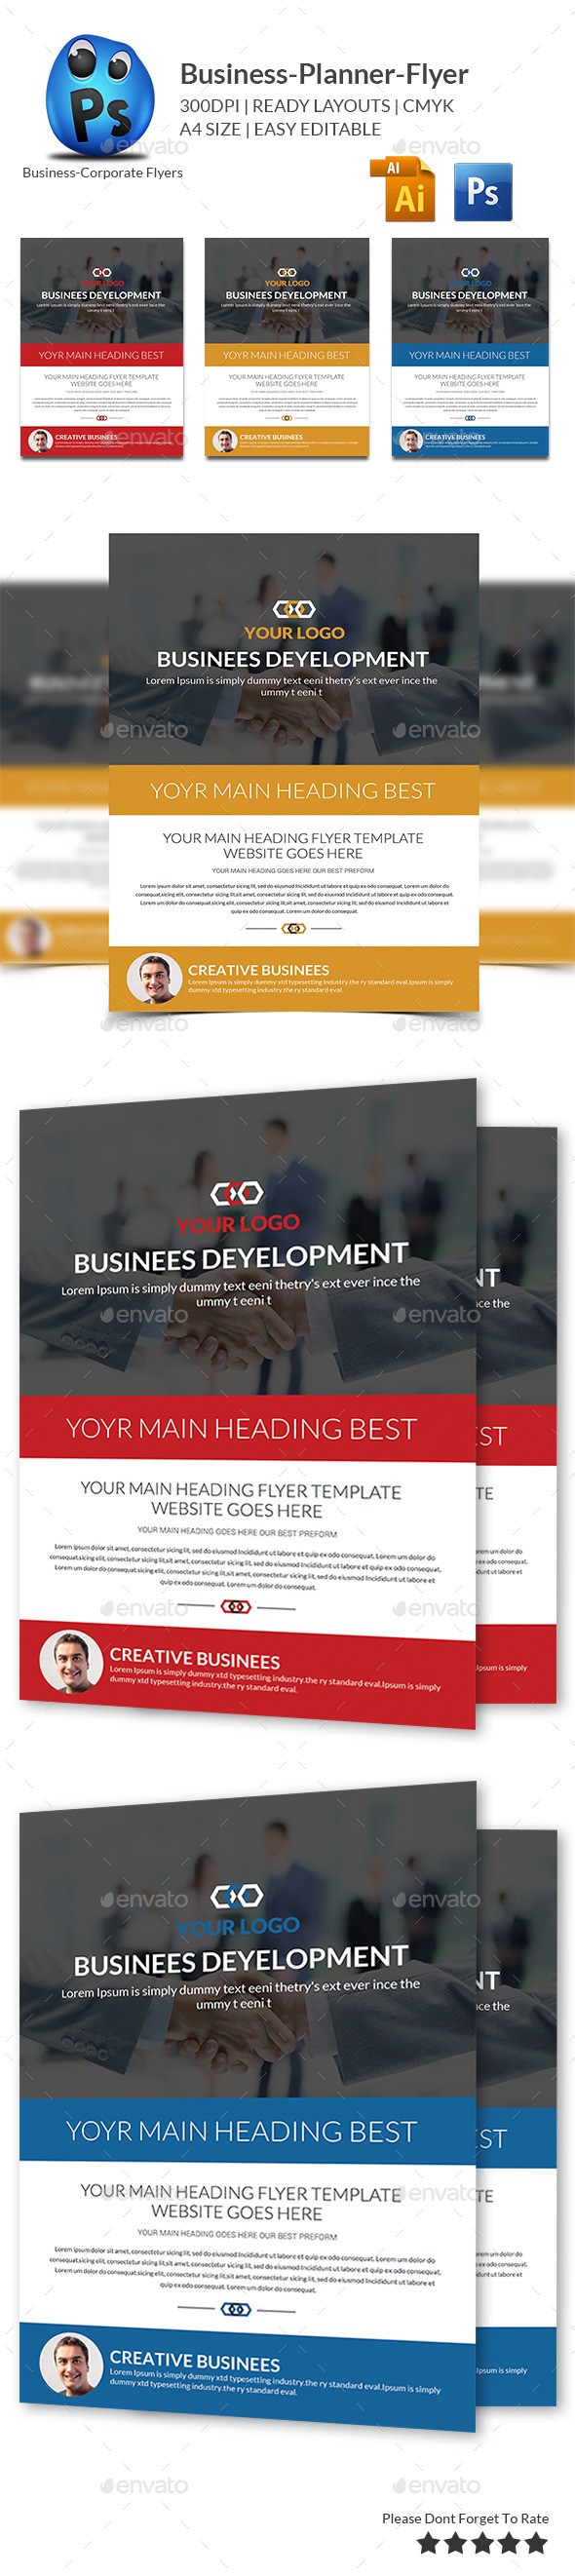 GraphicRiver Business Planner Flyer Print Templates 10284919